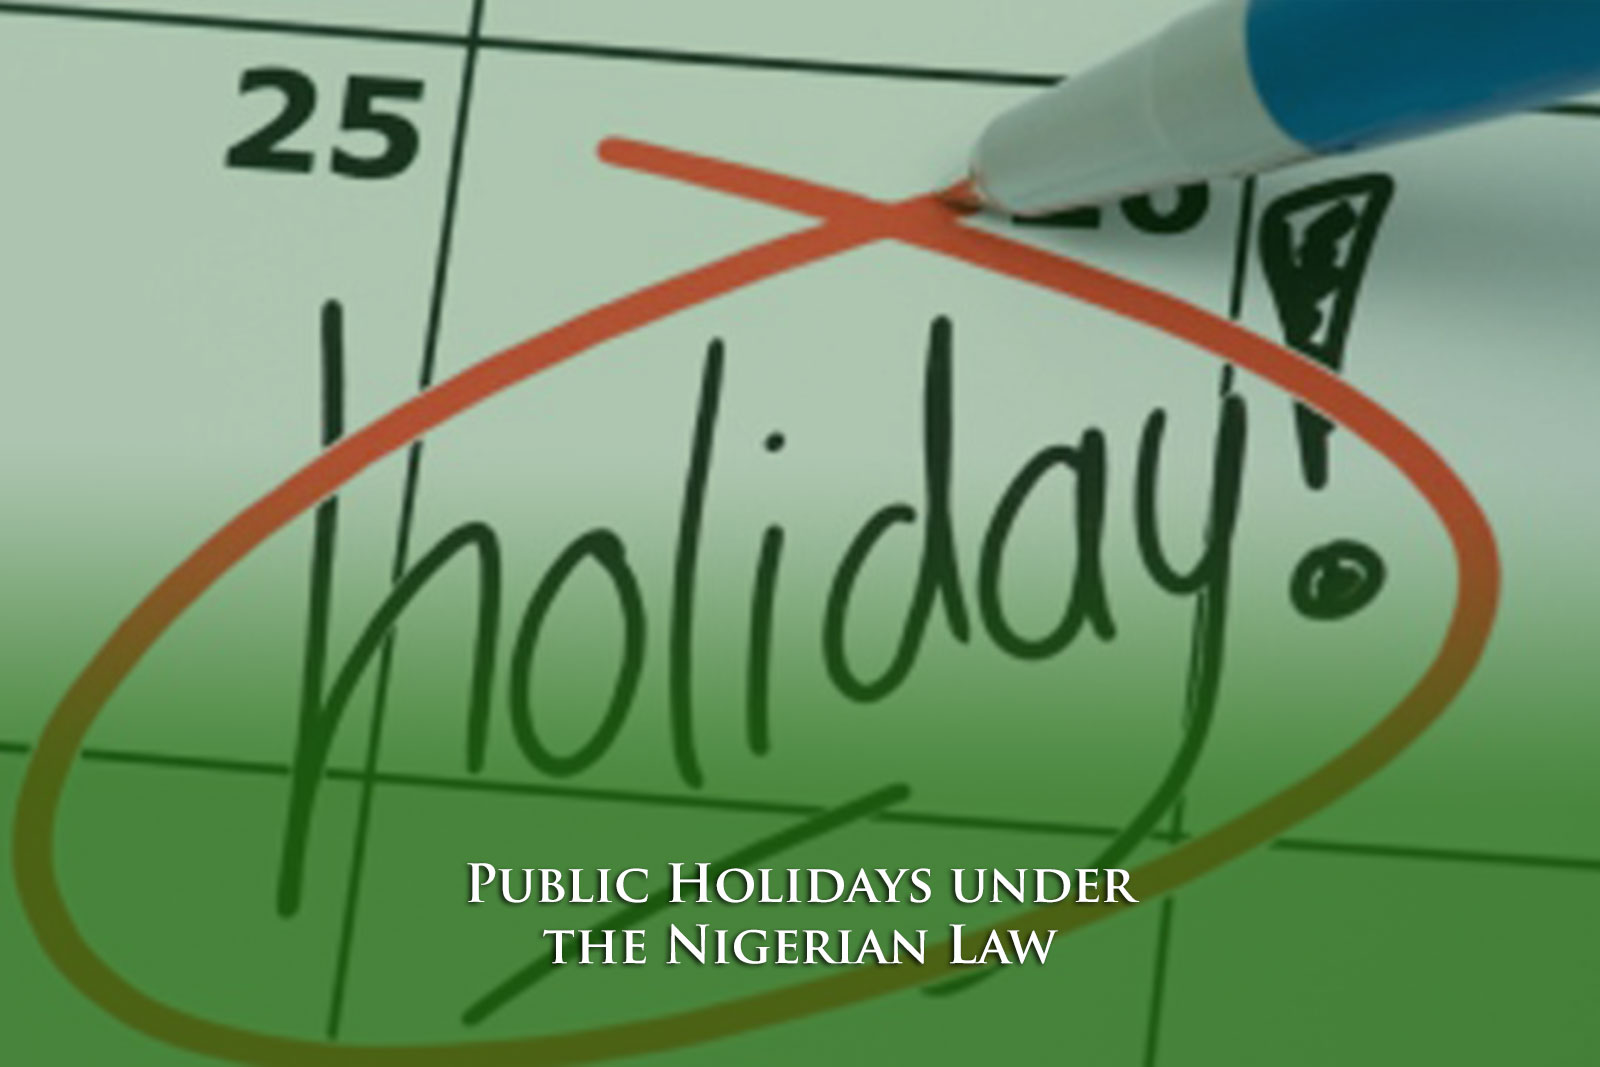 Public Holidays under the Nigerian Law